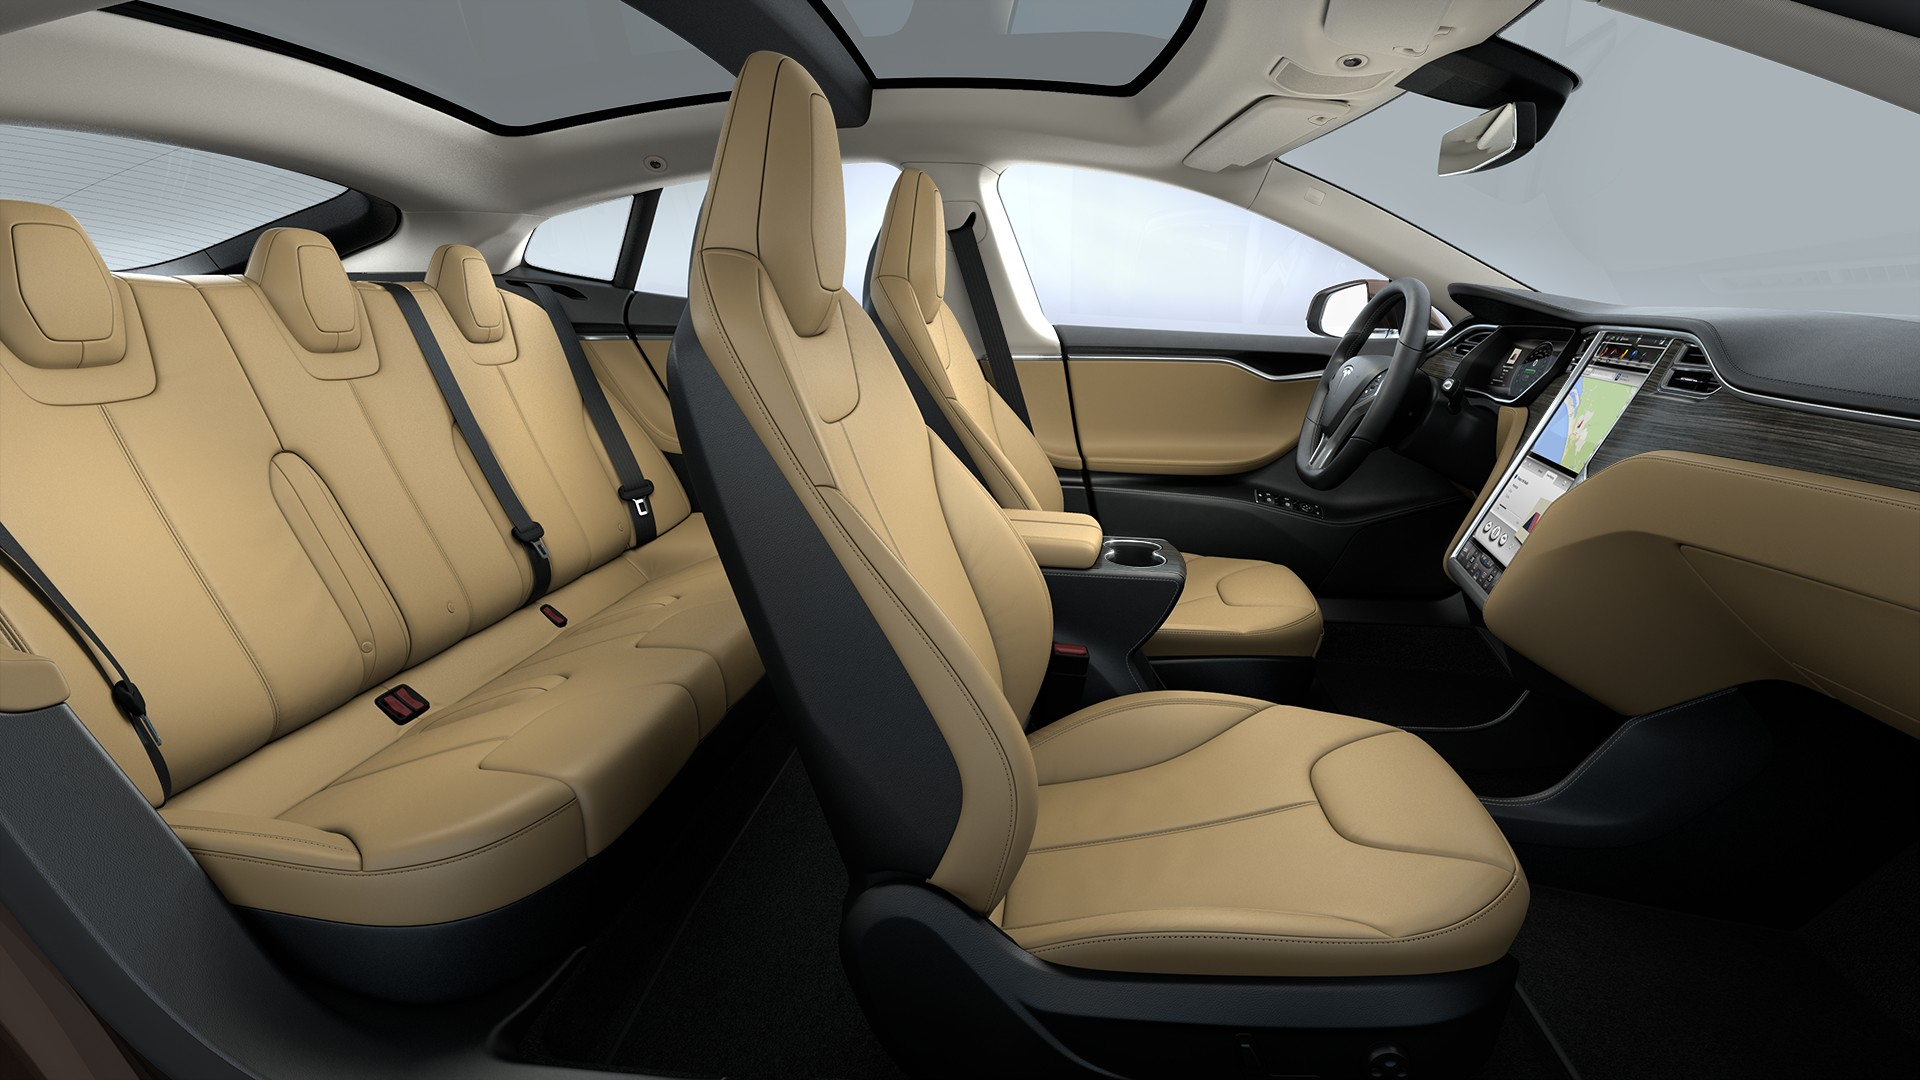 Interieur Tan Leather Seats Matte Obeche Wood Decor Standard Textile Headliner